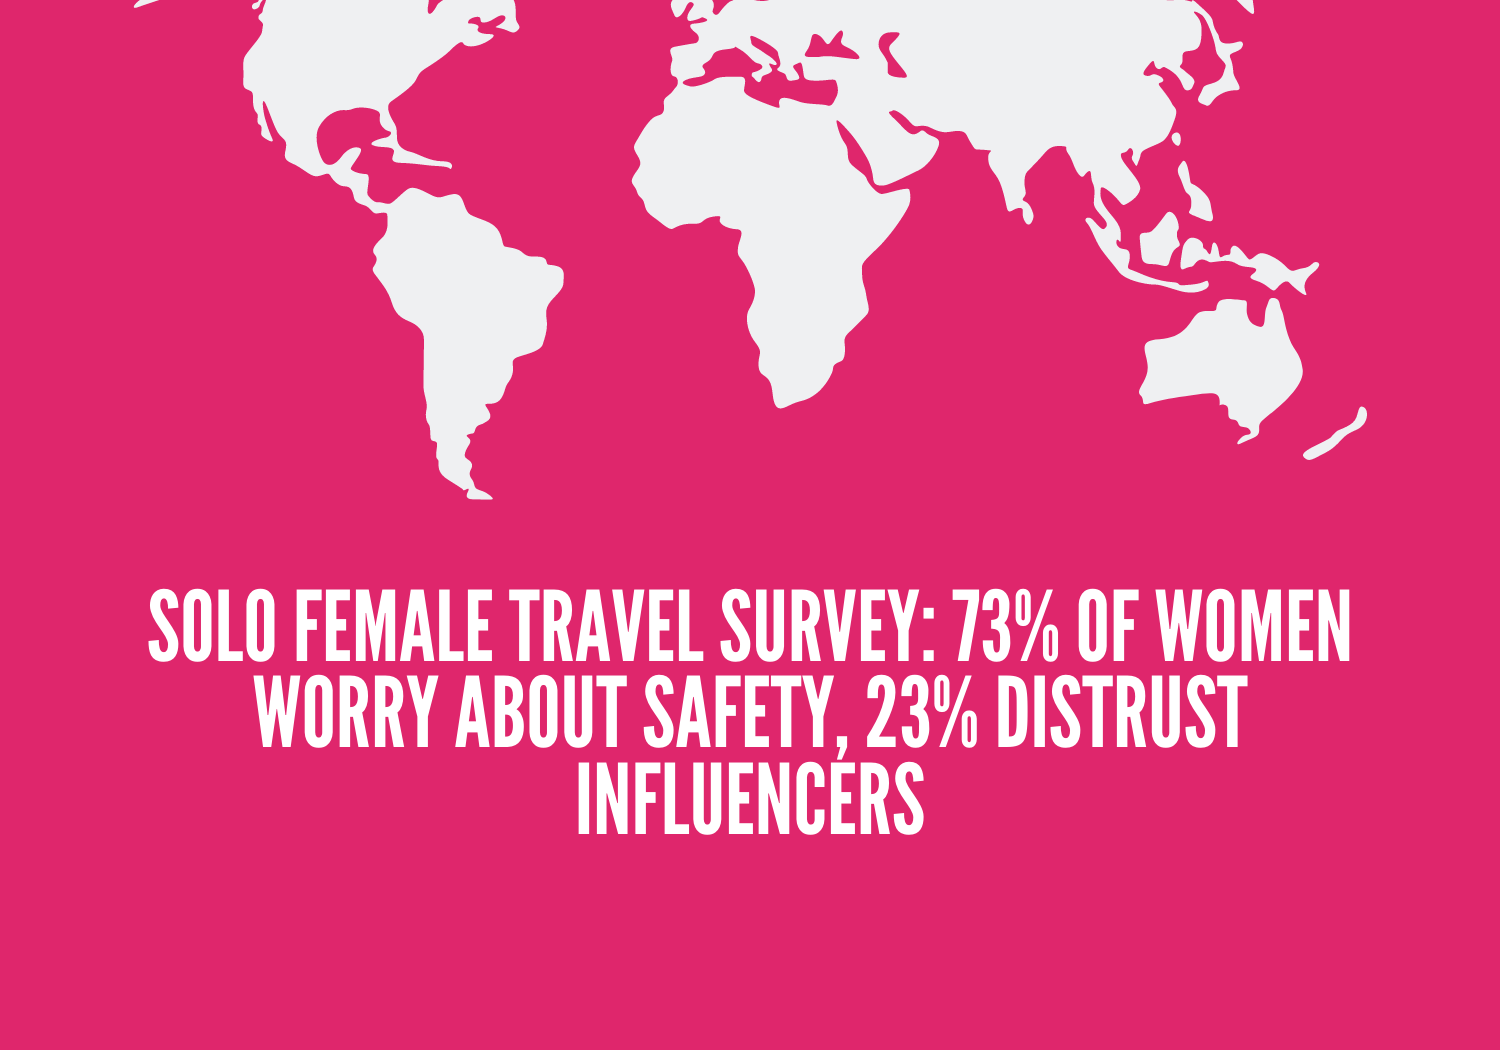 Women worry about safety when traveling solo